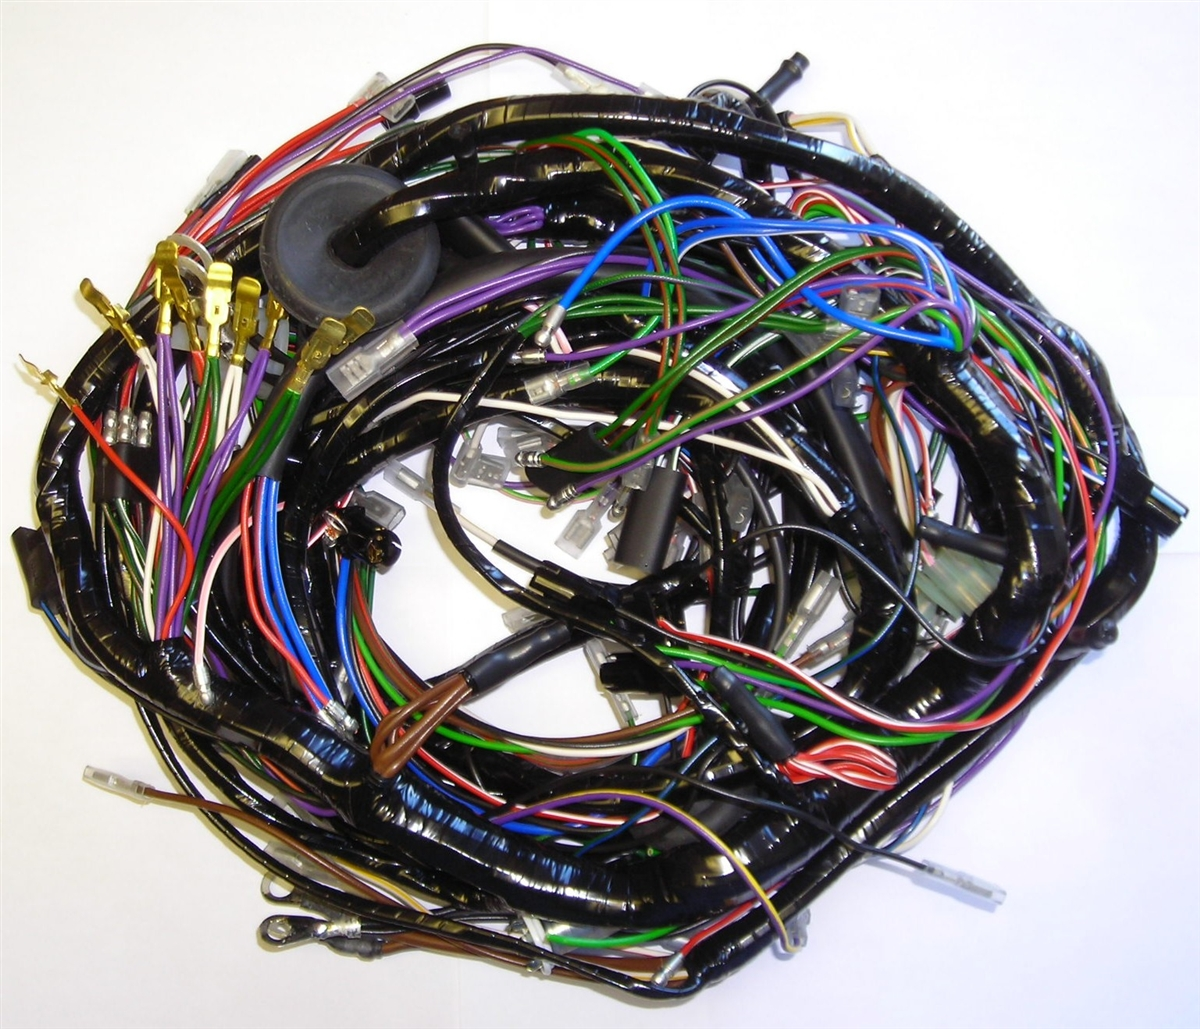 triumph spitfire 1500 main wiring harness wiring harness in europe wiring harness in europe